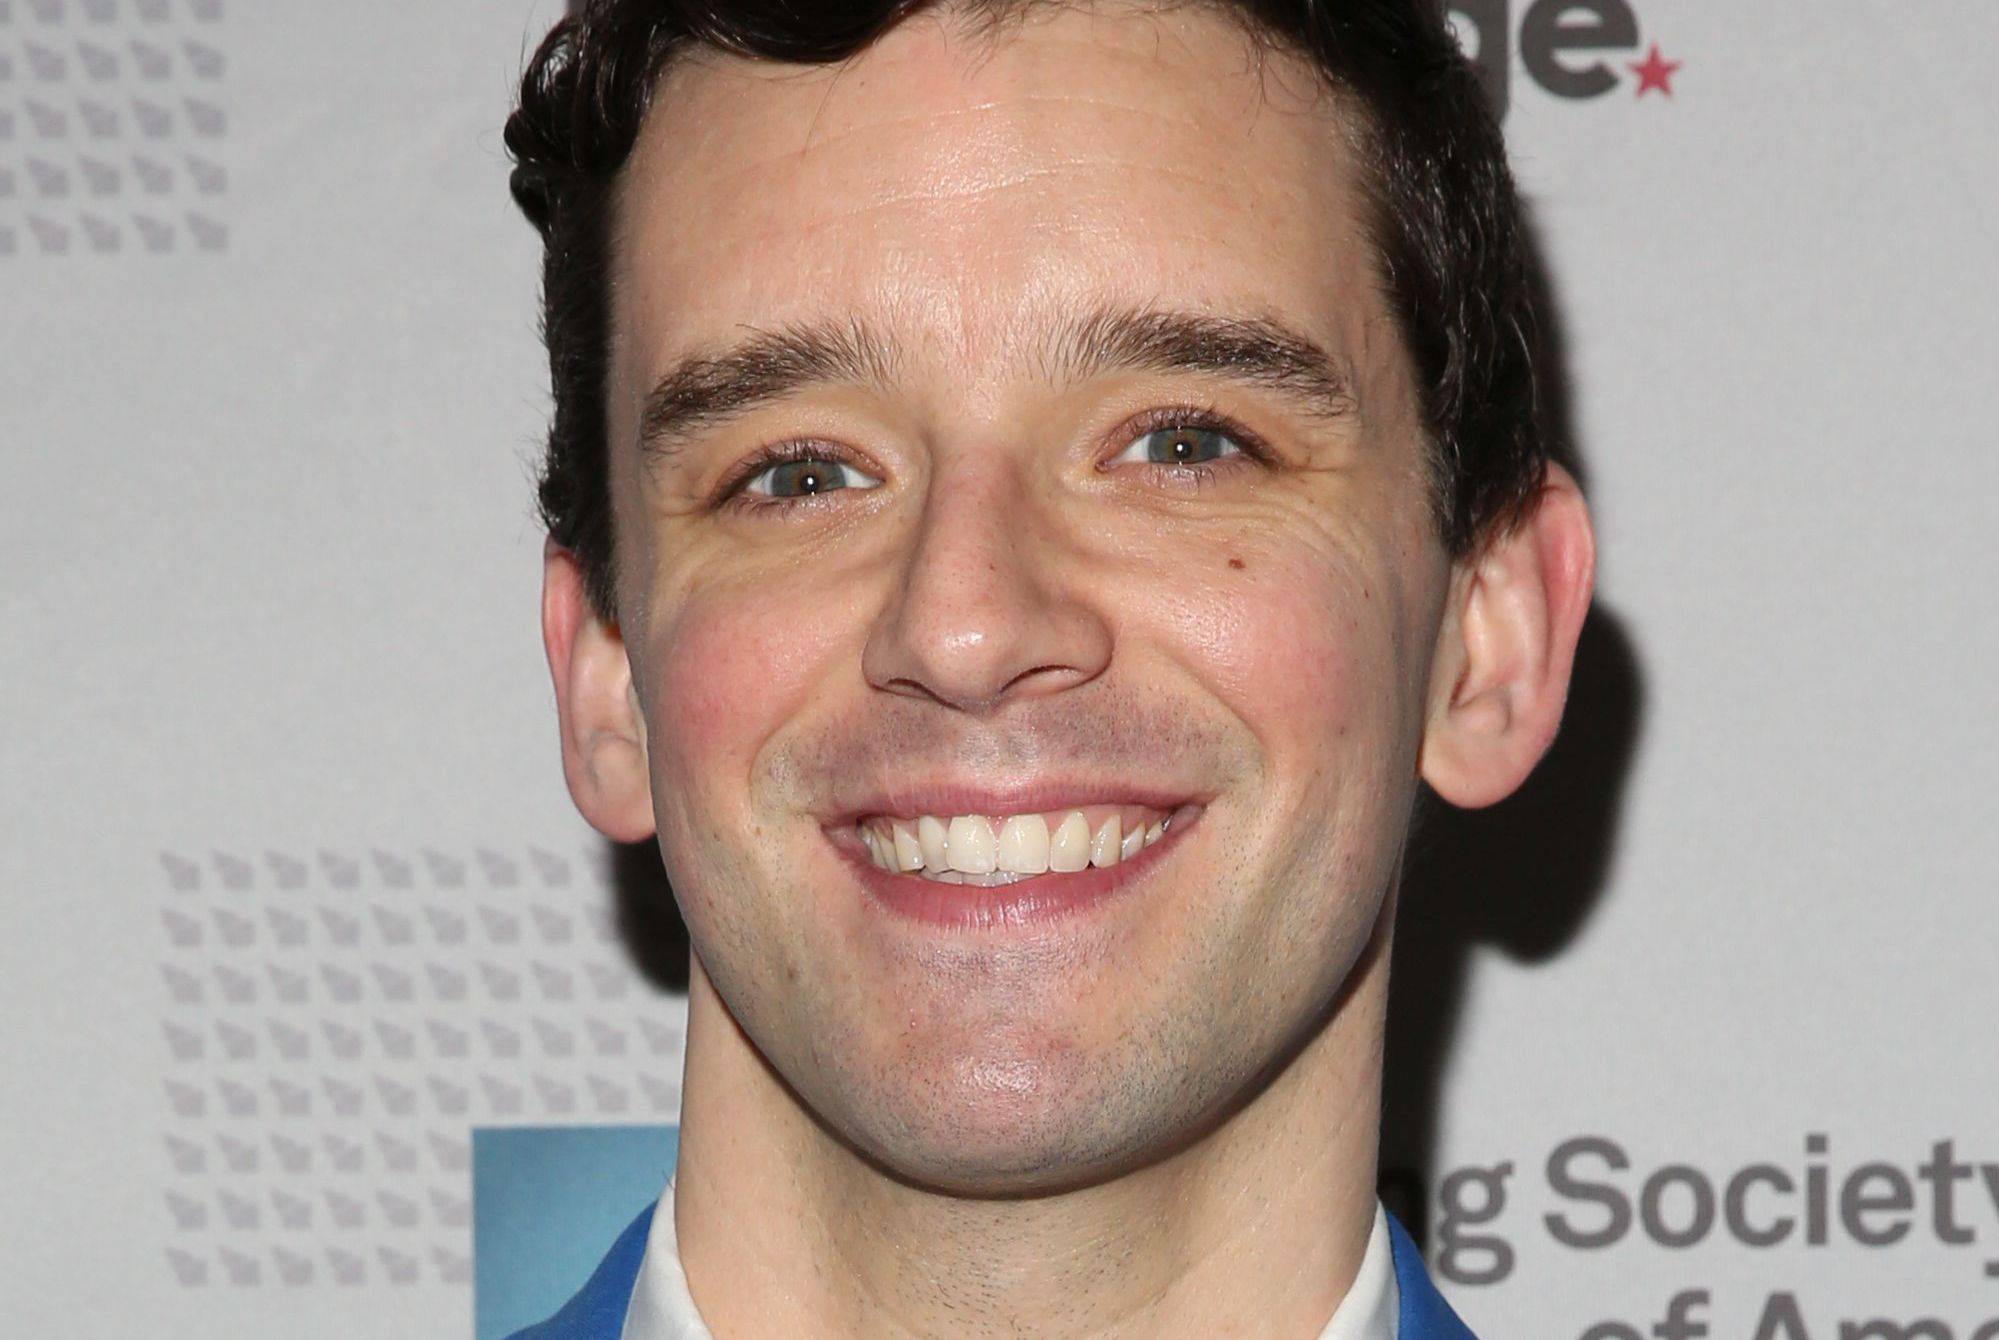 Mandatory Credit: Photo by Amy Sussman/REX/Shutterstock (7908444w) Michael Urie 32nd Annual Artios Awards, Arrivals, New York, USA - 19 Jan 2017